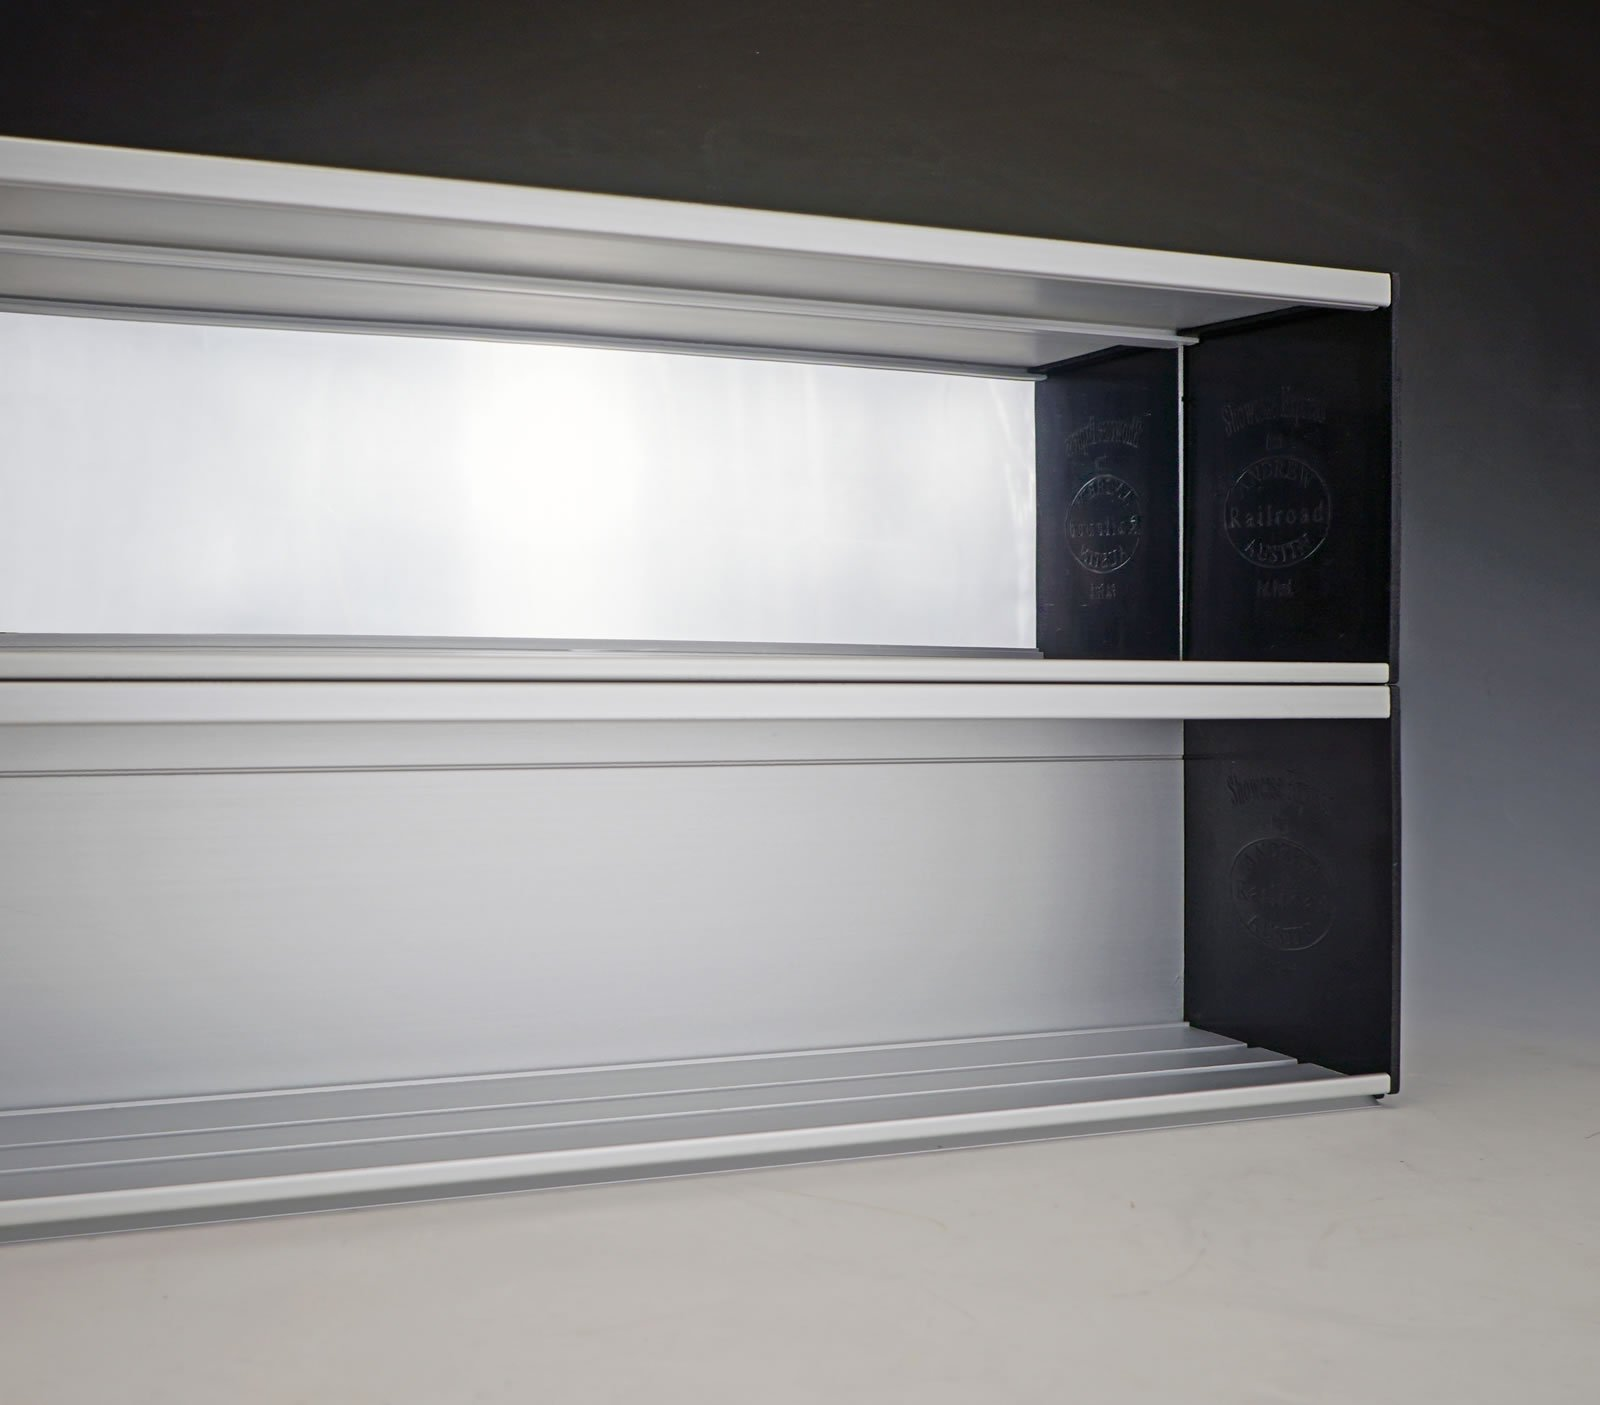 Display Case 6 ft. LED Replacement Lighting for Window Diaplays or Showcae